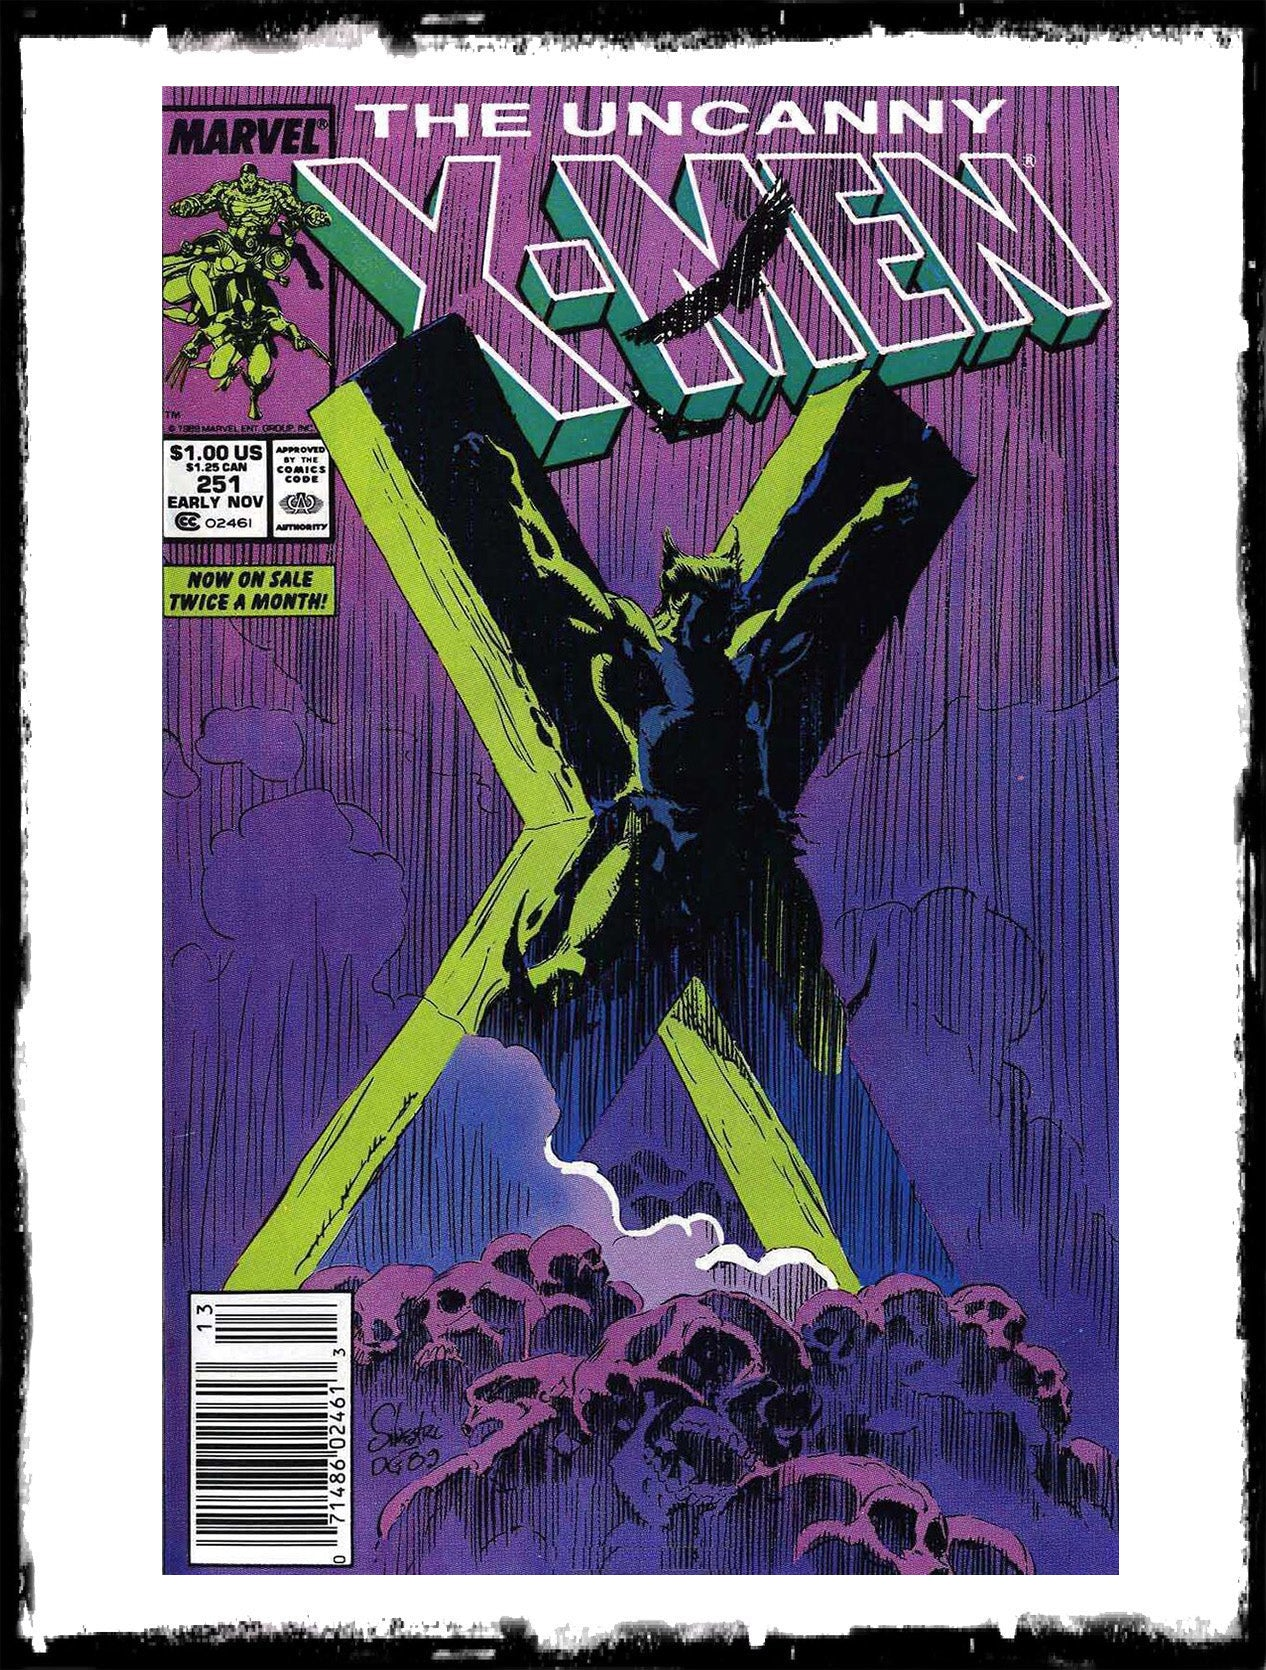 "UNCANNY X-MEN - #251 ""FEVER DREAM"" ICONIC COVER (1989 - VF+)"